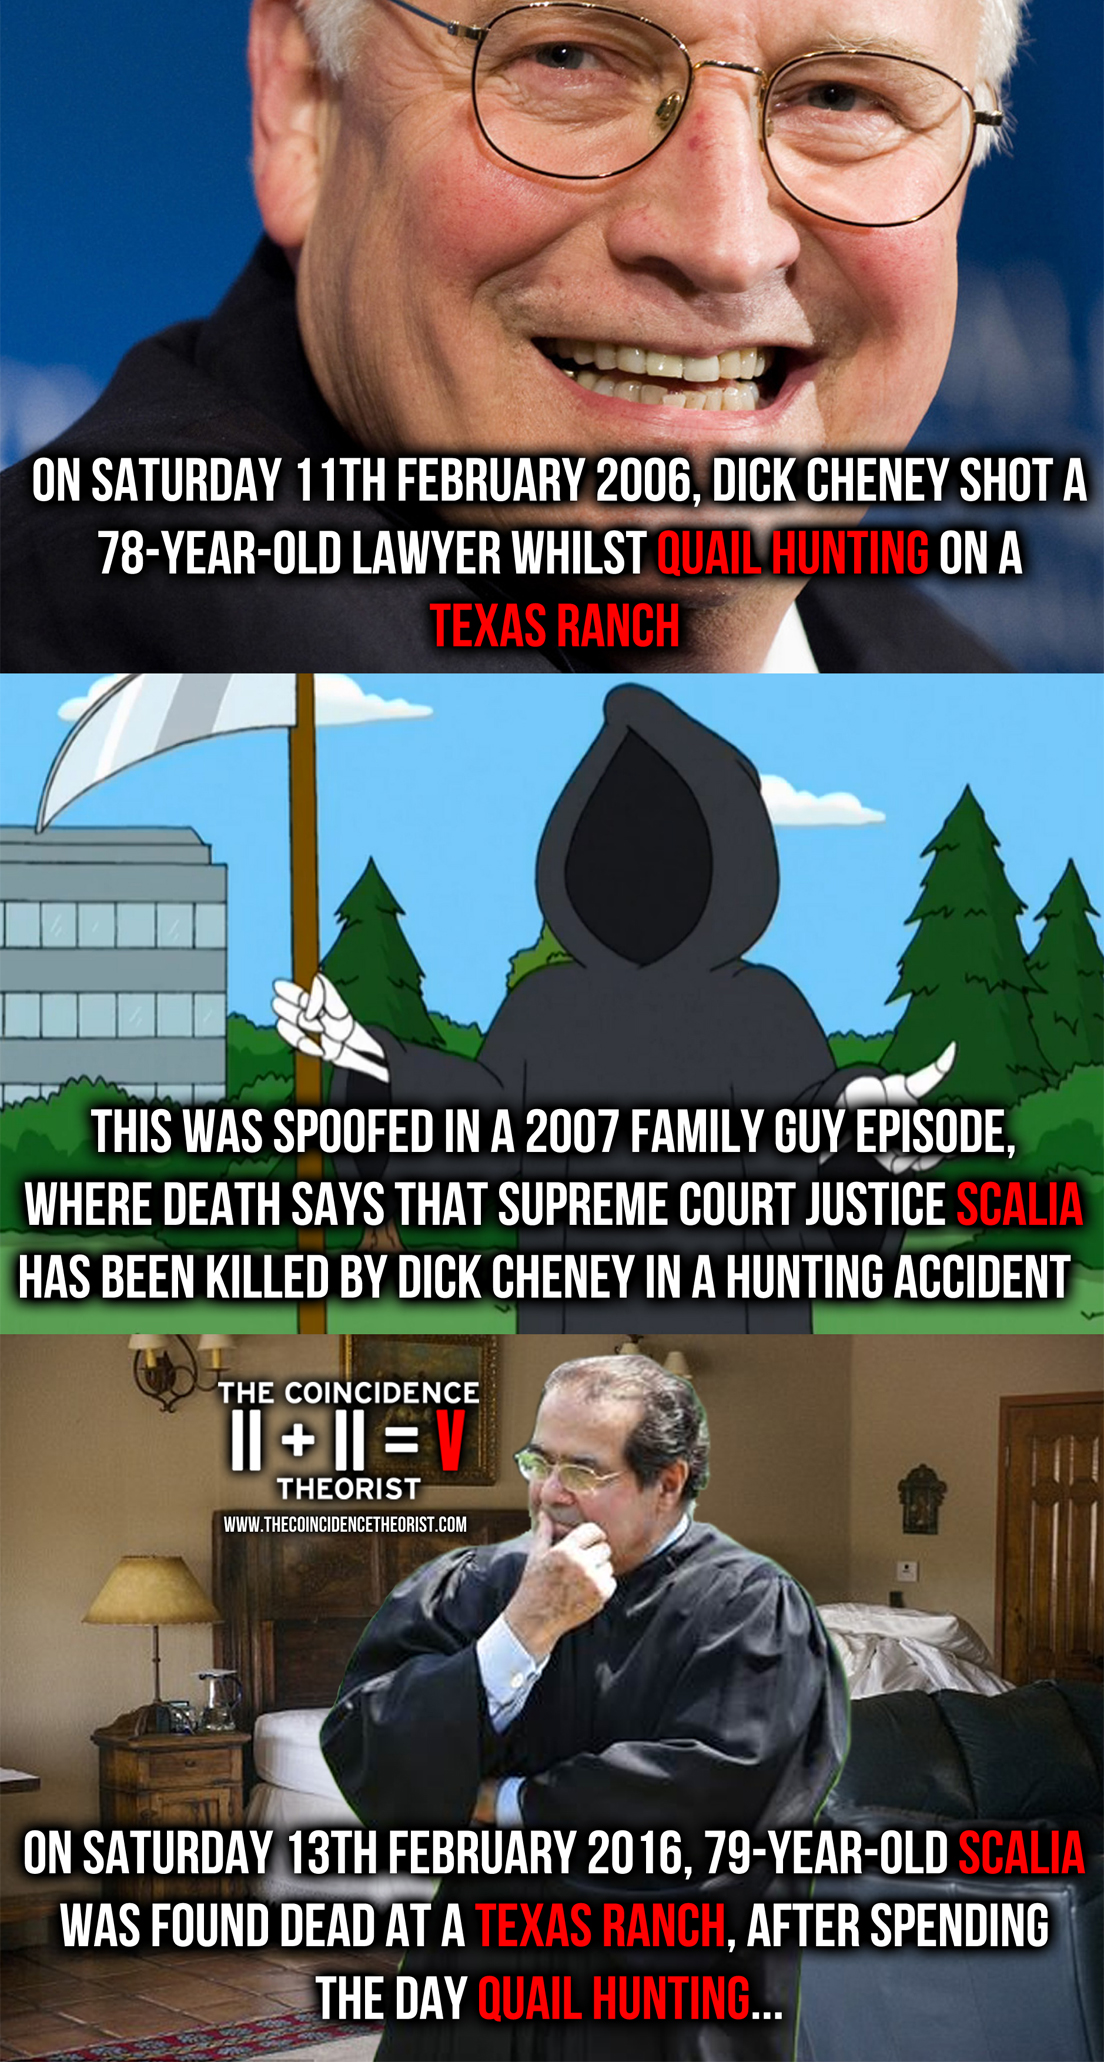 Dick cheney and justice scalia